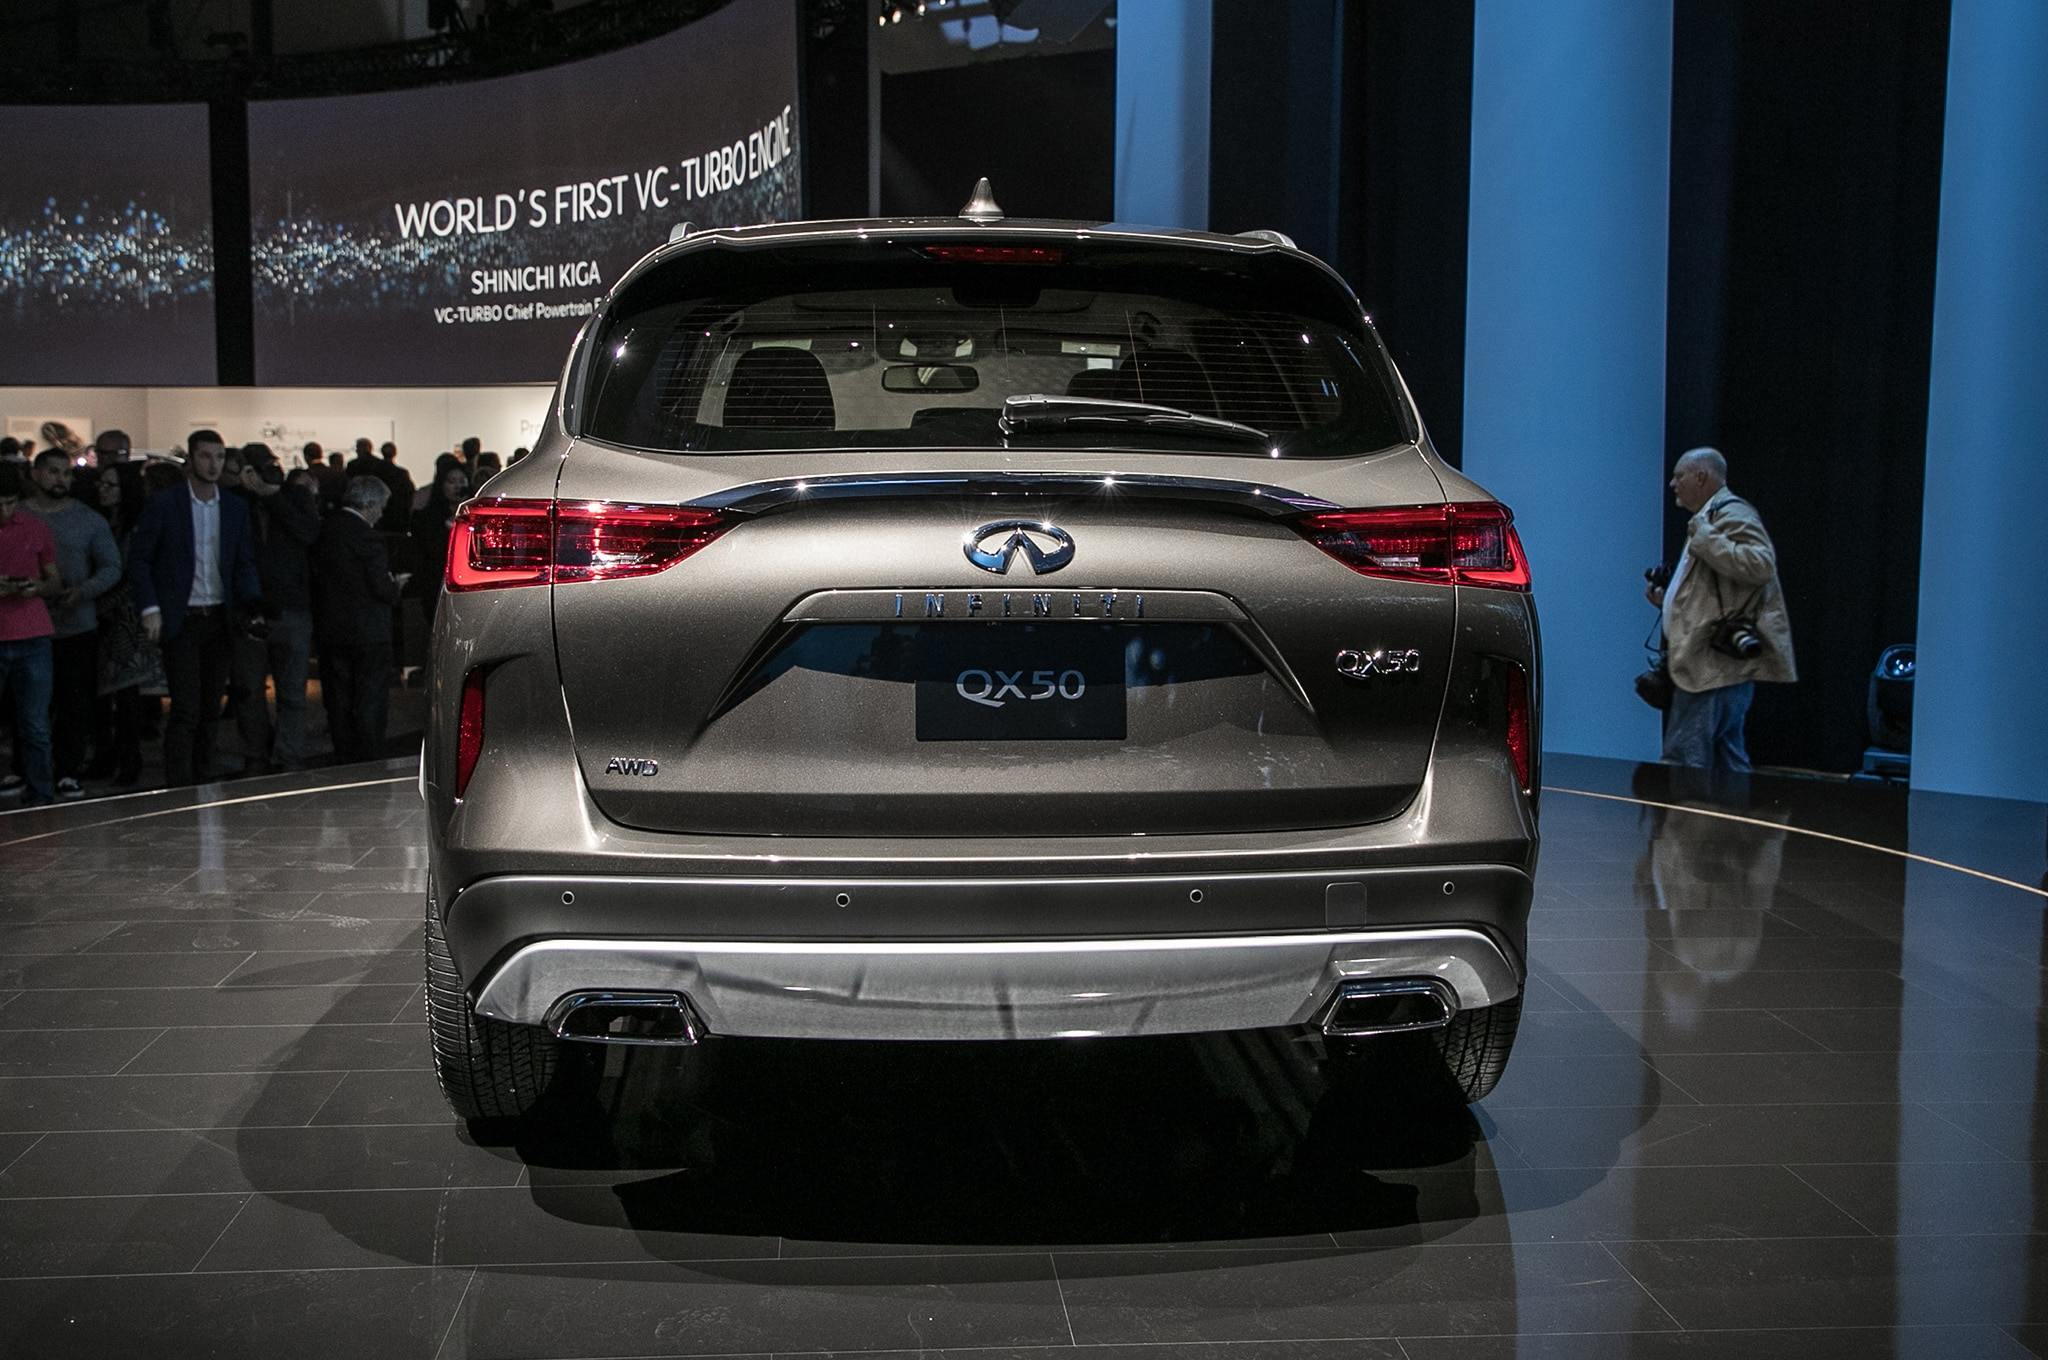 engine a cheese into production infiniti the news says camera infinity compression is to new comes with variable first car focus